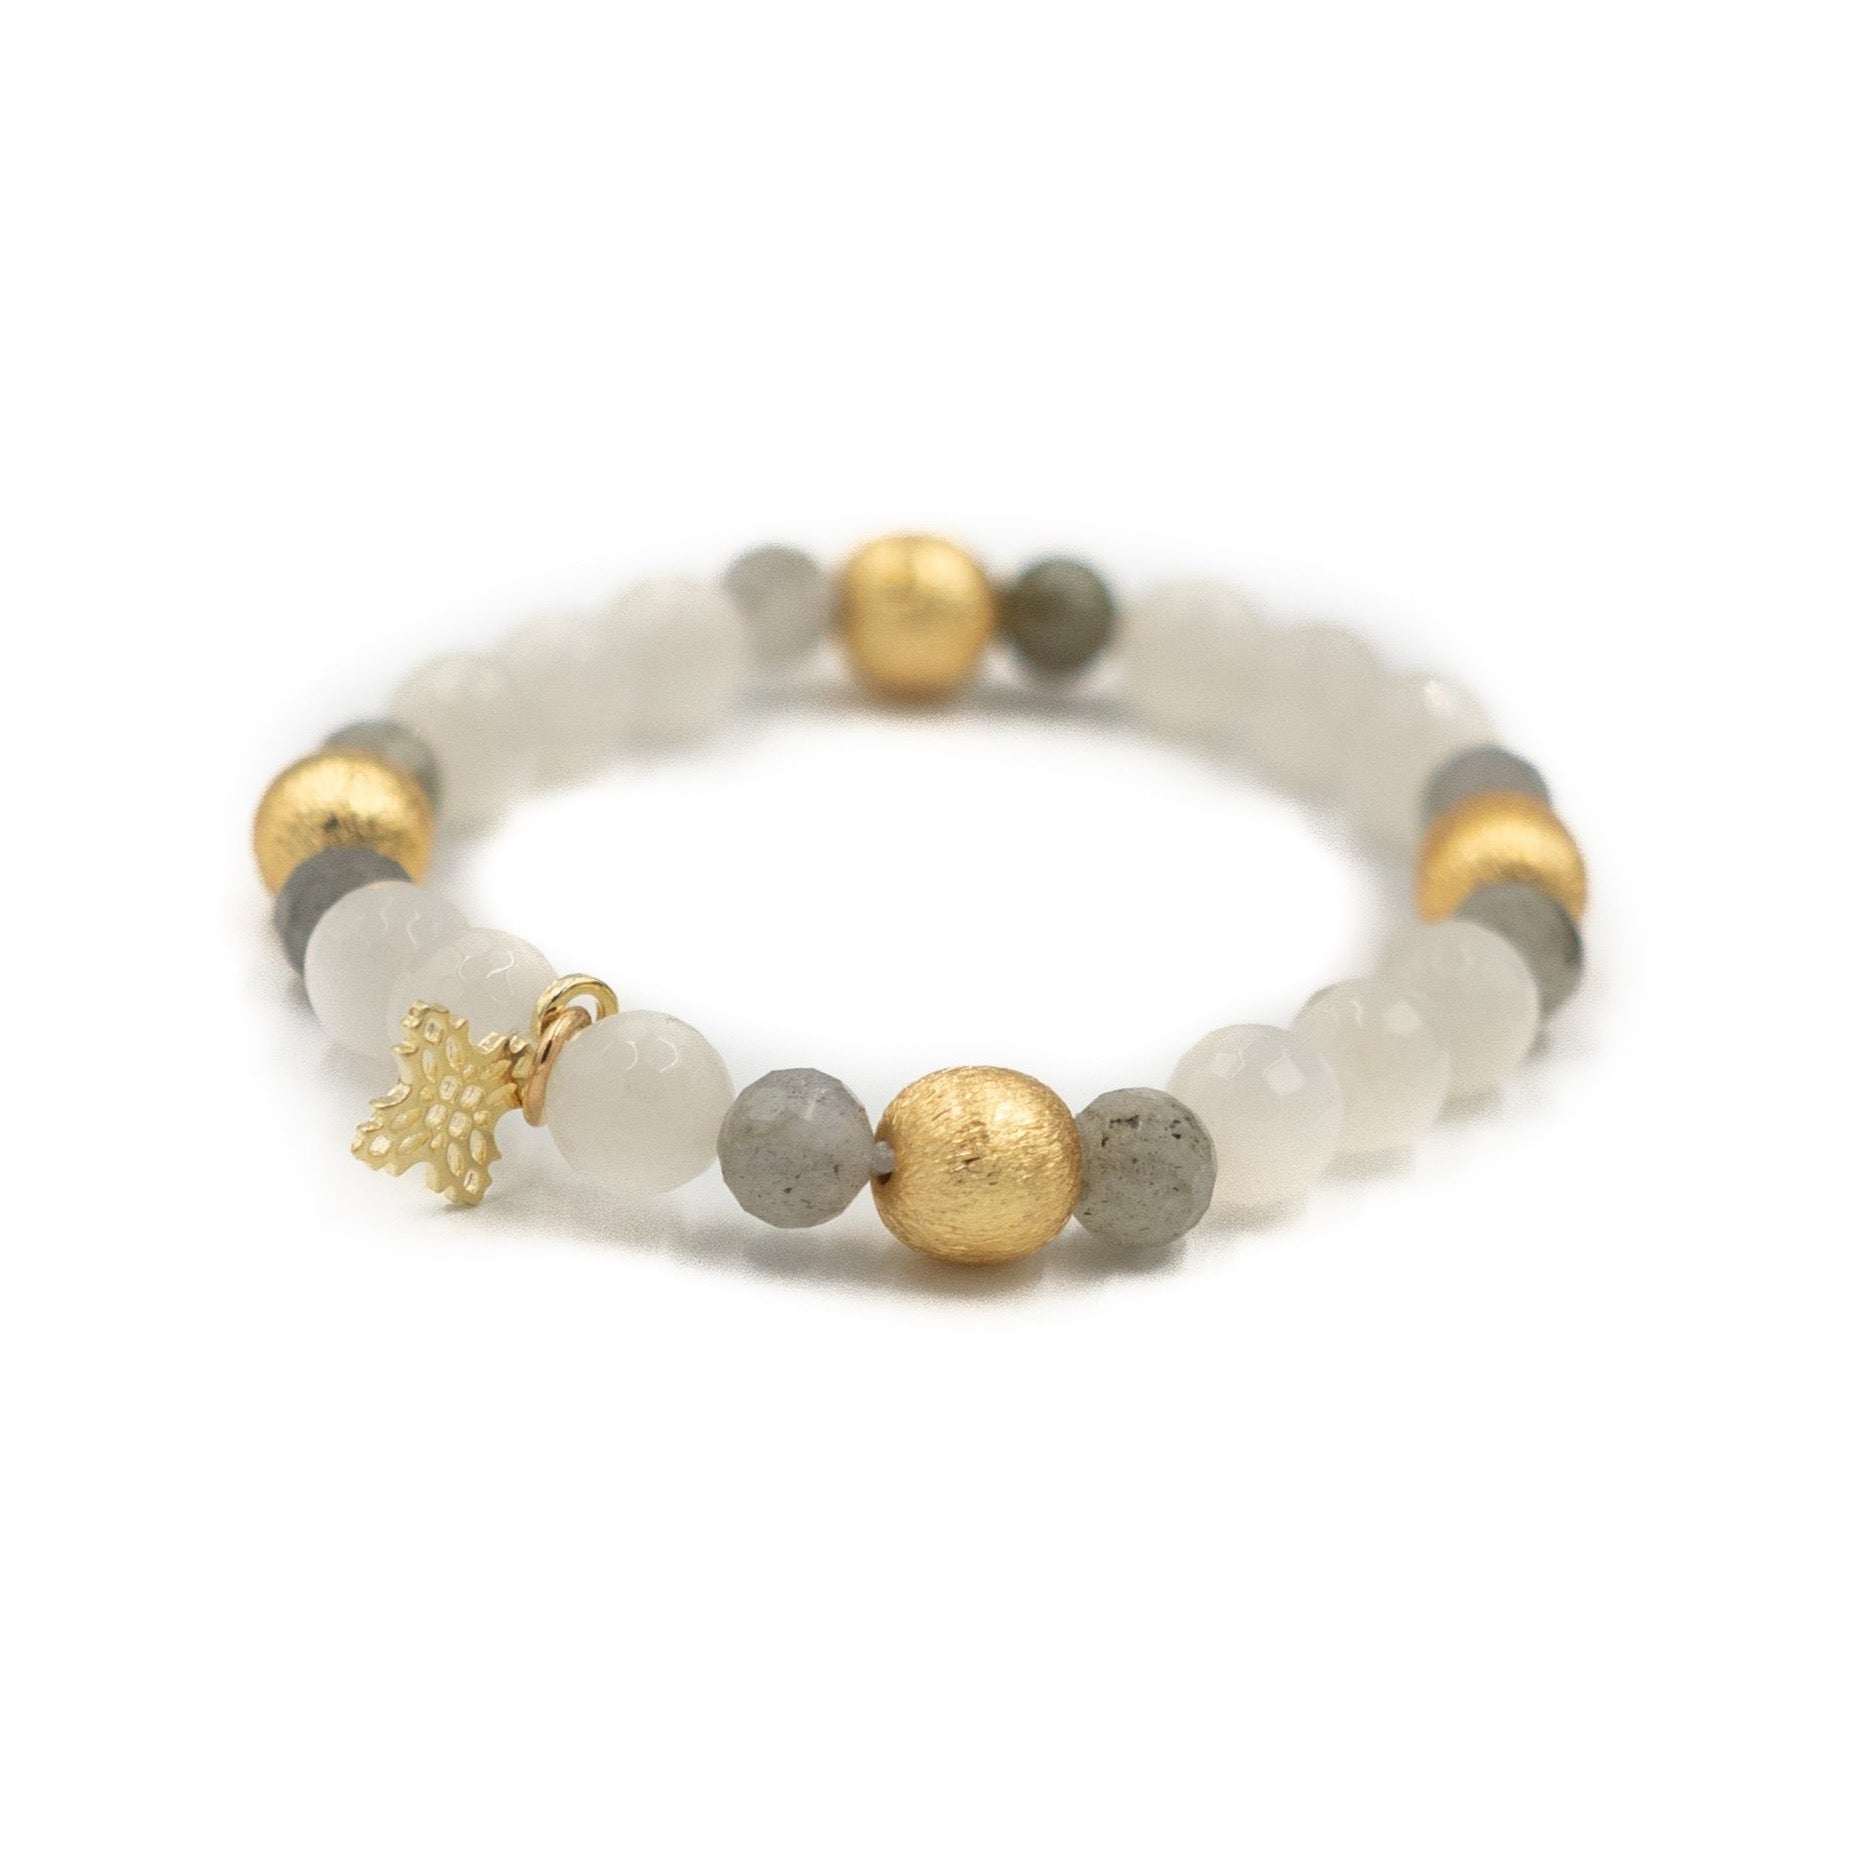 Blossom Bracelet, Moonstone and Labradorite